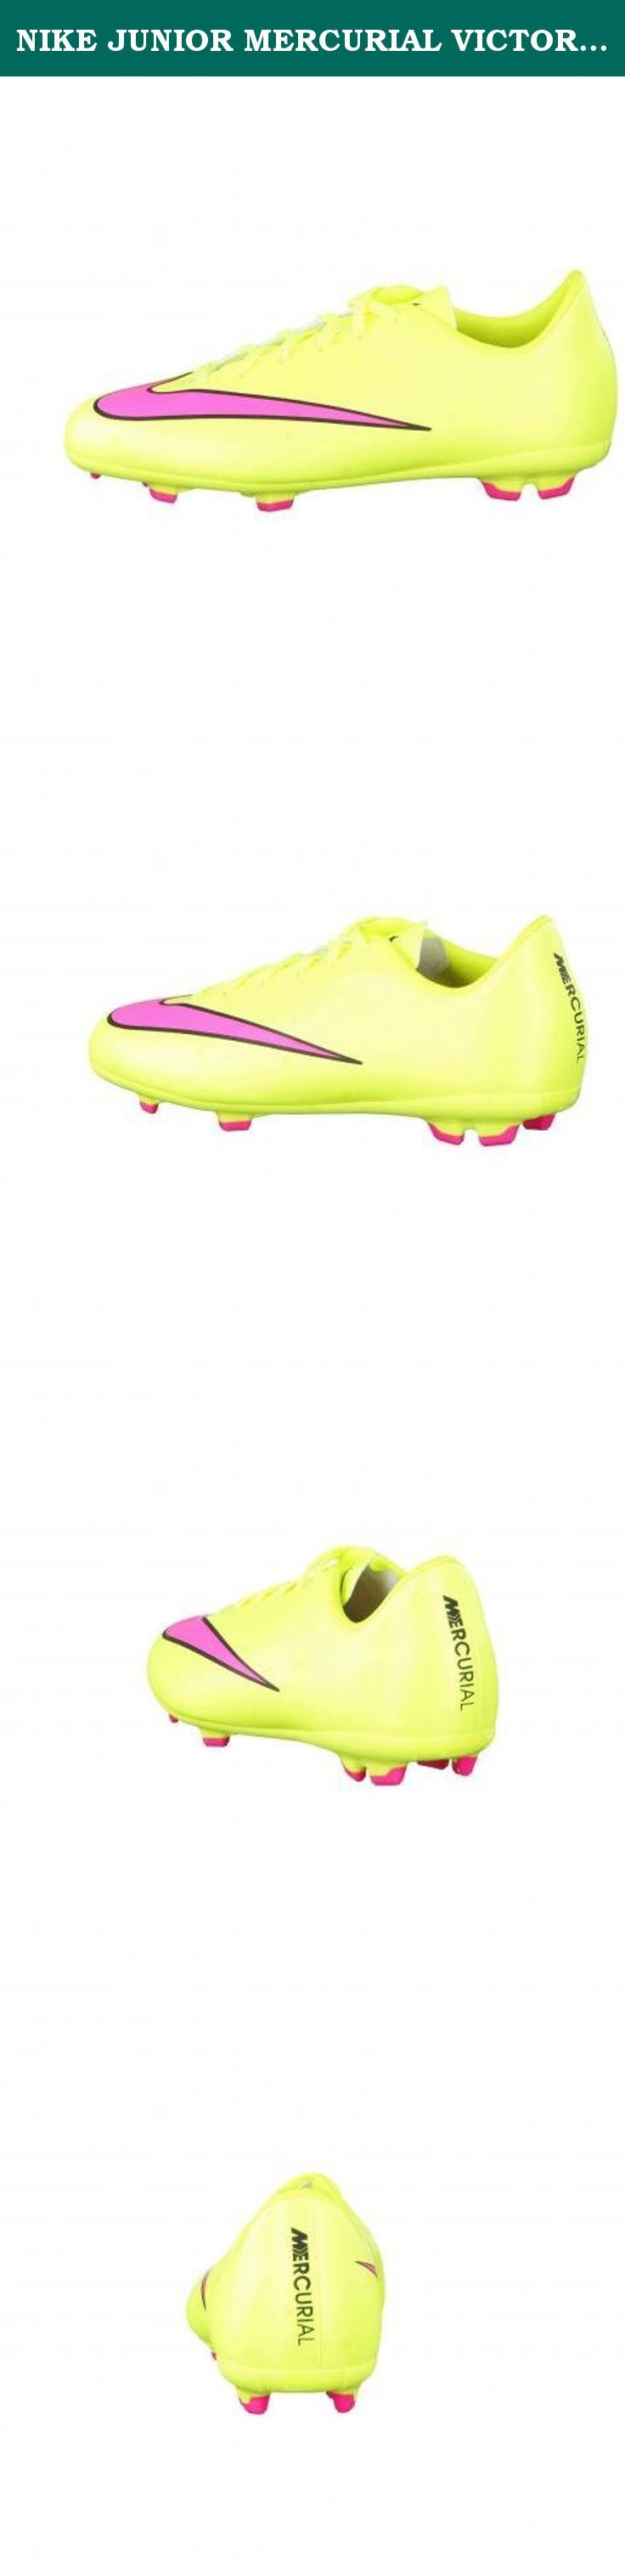 NIKE JUNIOR MERCURIAL VICTORY V FG- (VOLT/HYPER PINK-BLACK) (3.5y). PRODUCT DESCRIPTION NIKE JR MERCURIAL VICTORY V FG- (VOLT/HYPER PINK-BLACK) Nike Jr. Mercurial Victory V FG Kids' Firm-Ground Football Boot MINIMAL FIT FOR EXPLOSIVE SPEED. The Nike Jr. Mercurial Victory V FG Kids' Firm-Ground Football Boot optimizes players' natural speed without sacrificing touch. Its updated Vapor traction system delivers multidirectional traction while a micro-texture upper helps grip the ball…